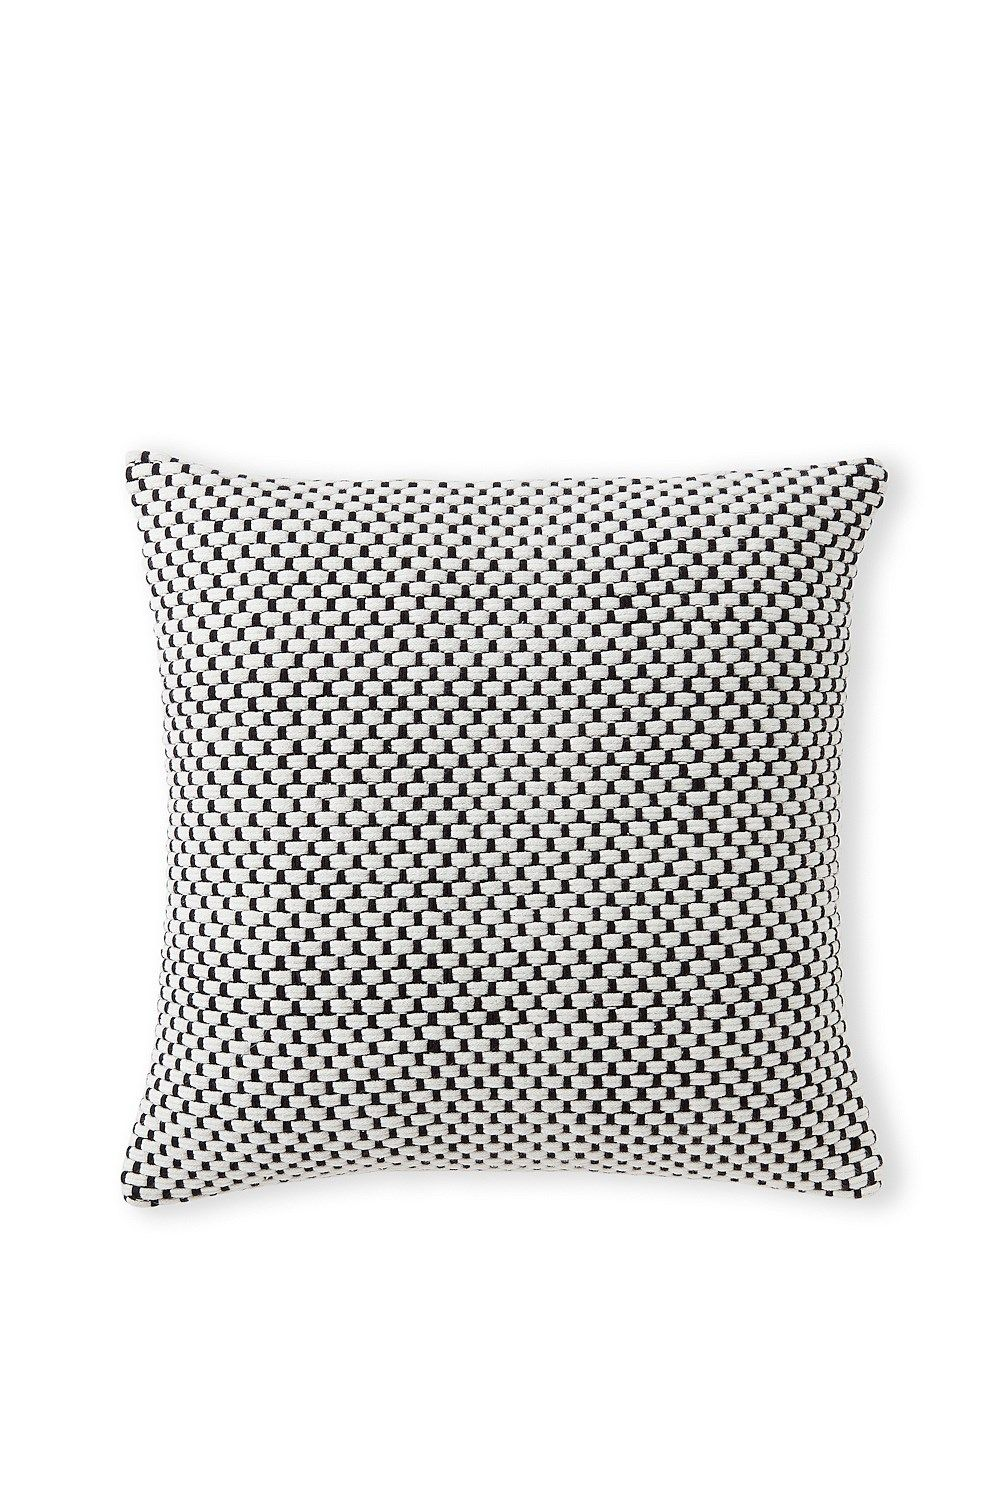 Cushions Country Road Online Franke Cushion Pillow